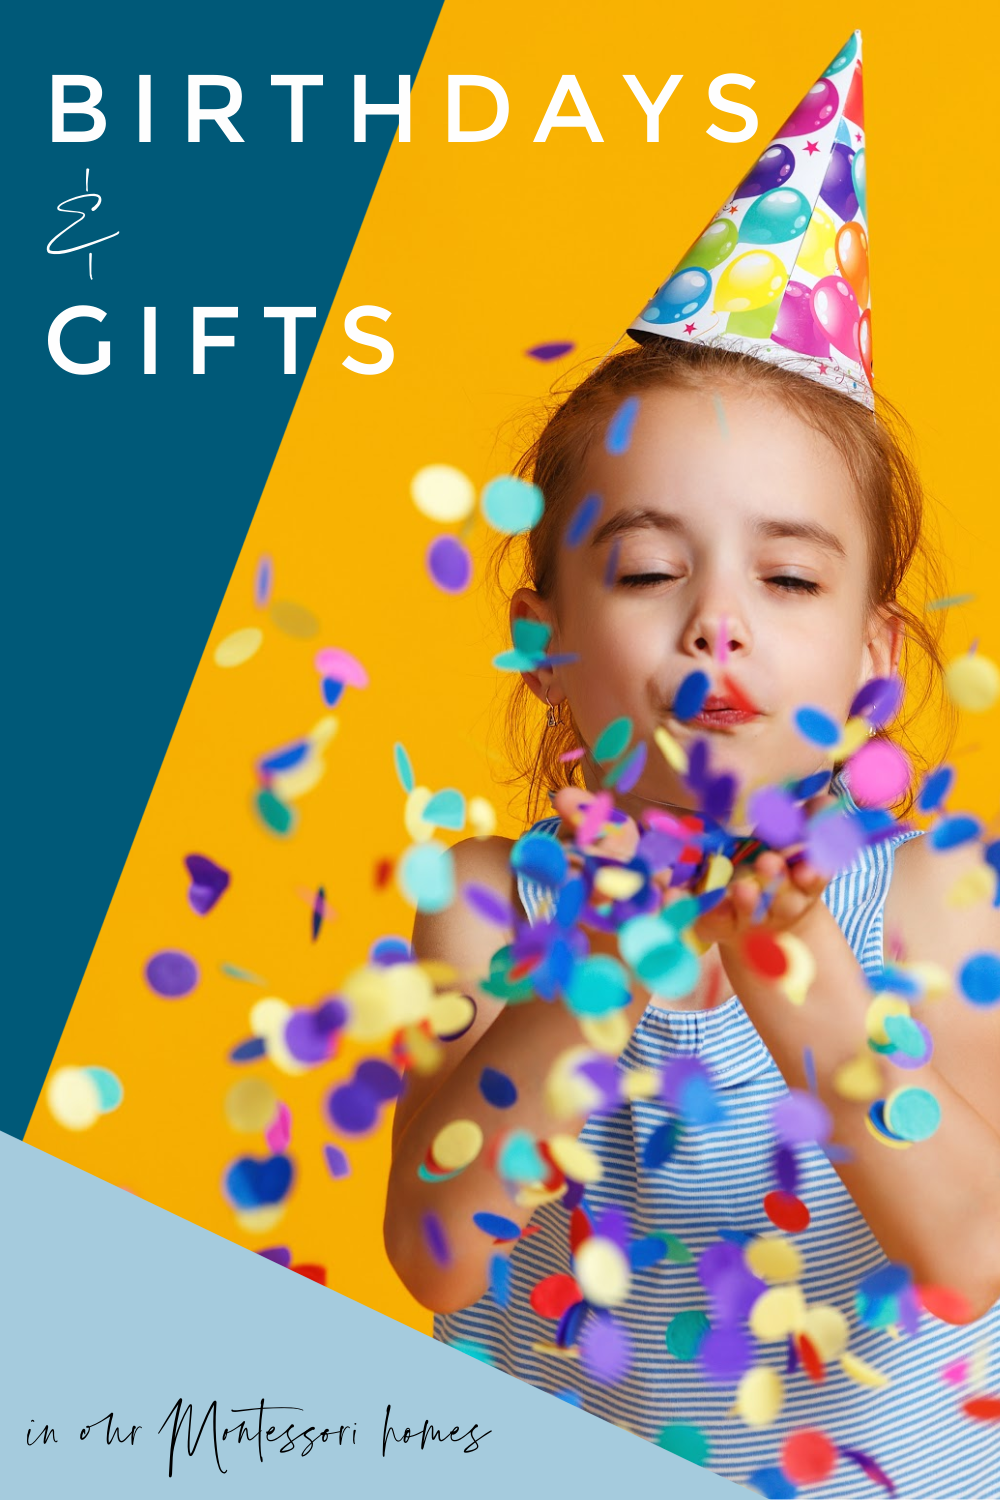 In this Montessori parenting podcast we discuss how to approach birthdays and gifts in your Montessori home.